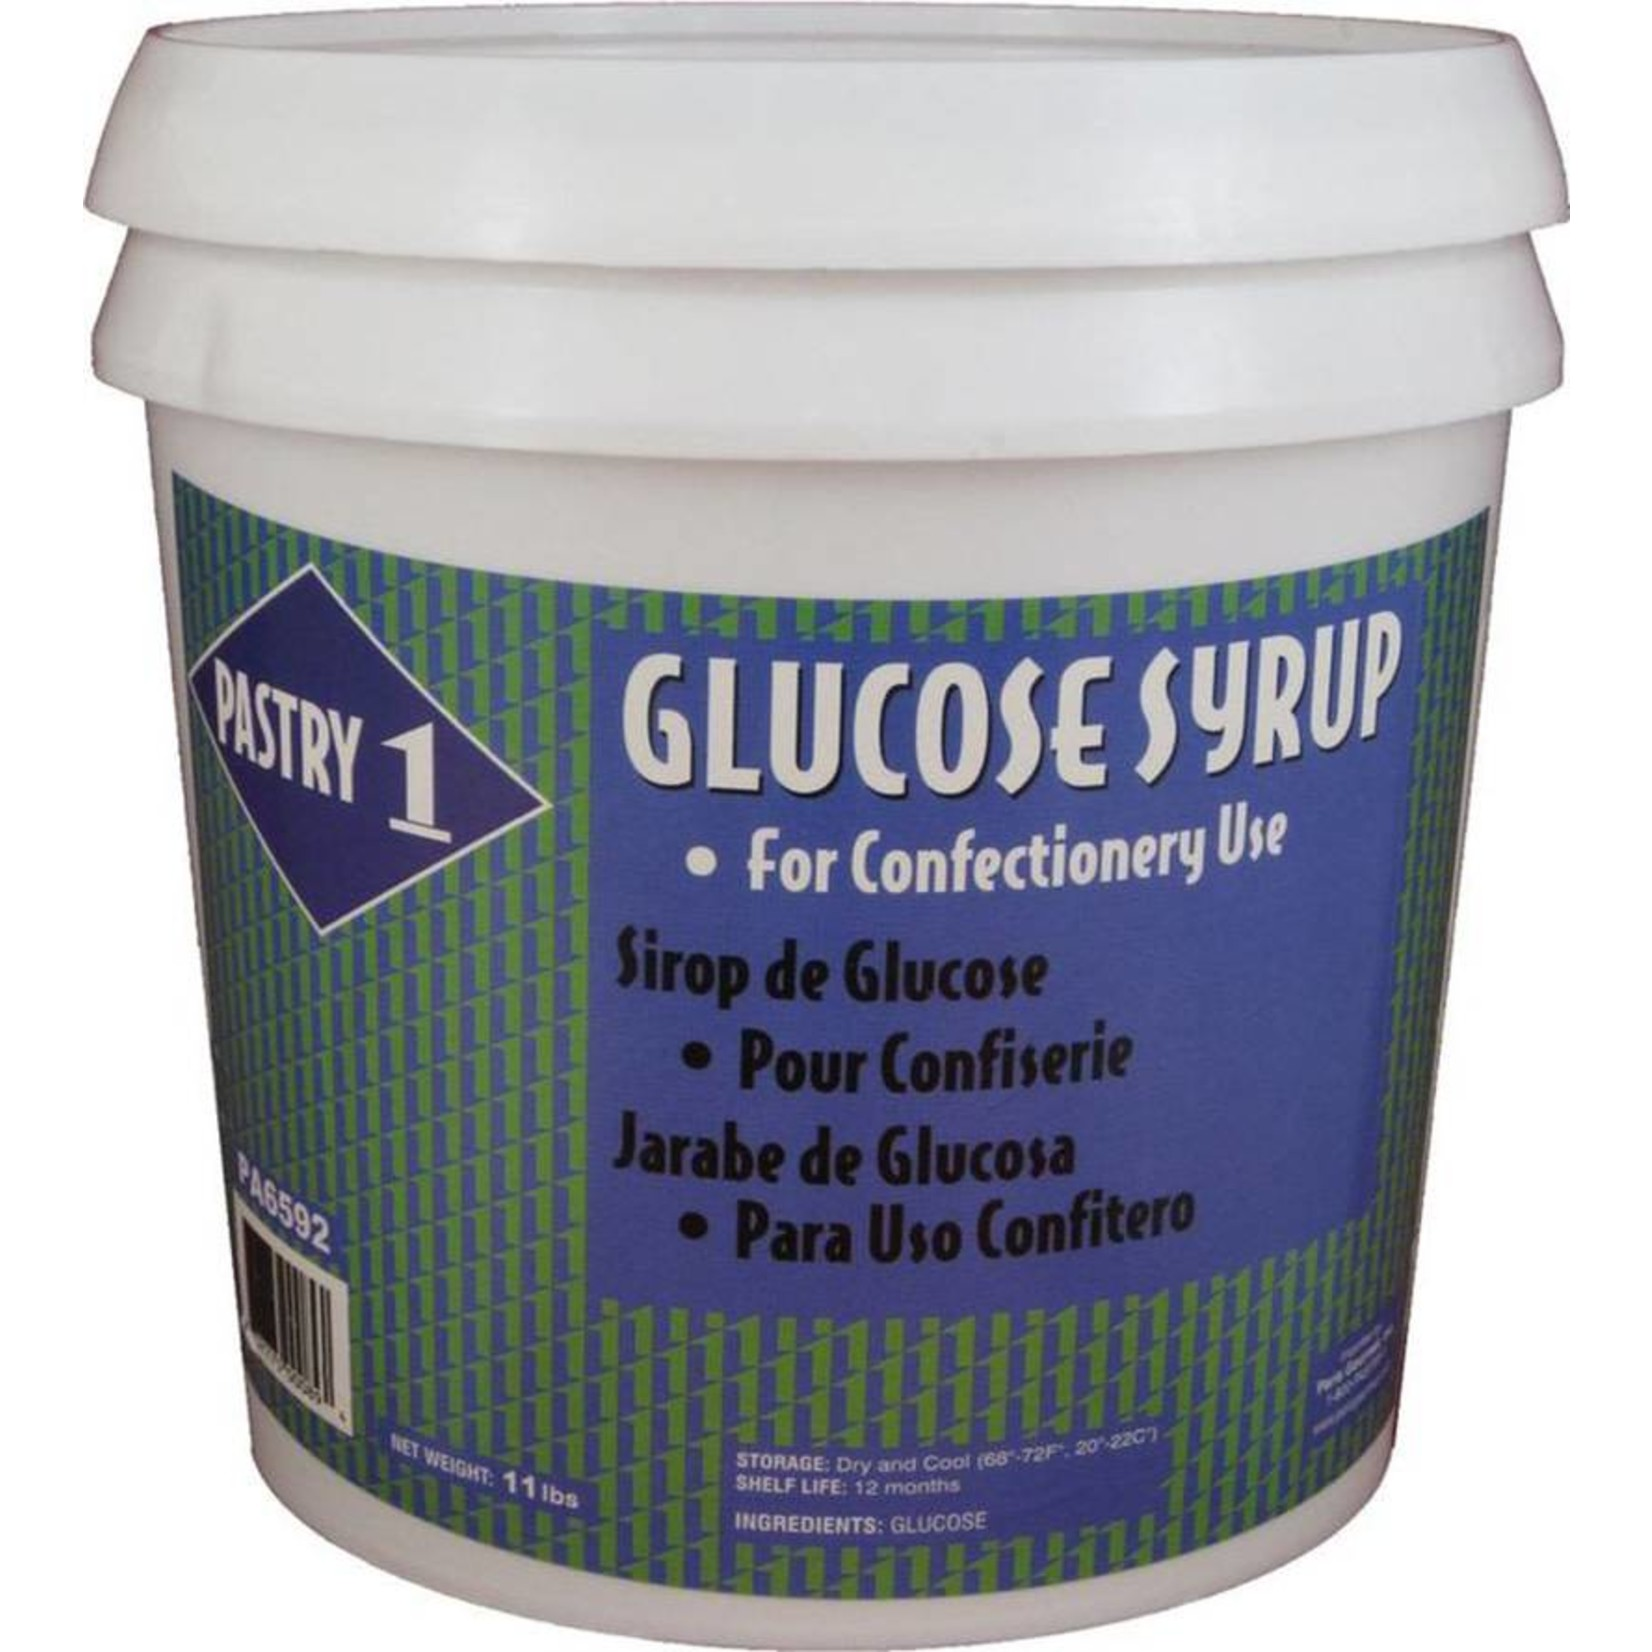 Pastry 1 Pastry 1 - Glucose Syrup - 11 lb, PA6592